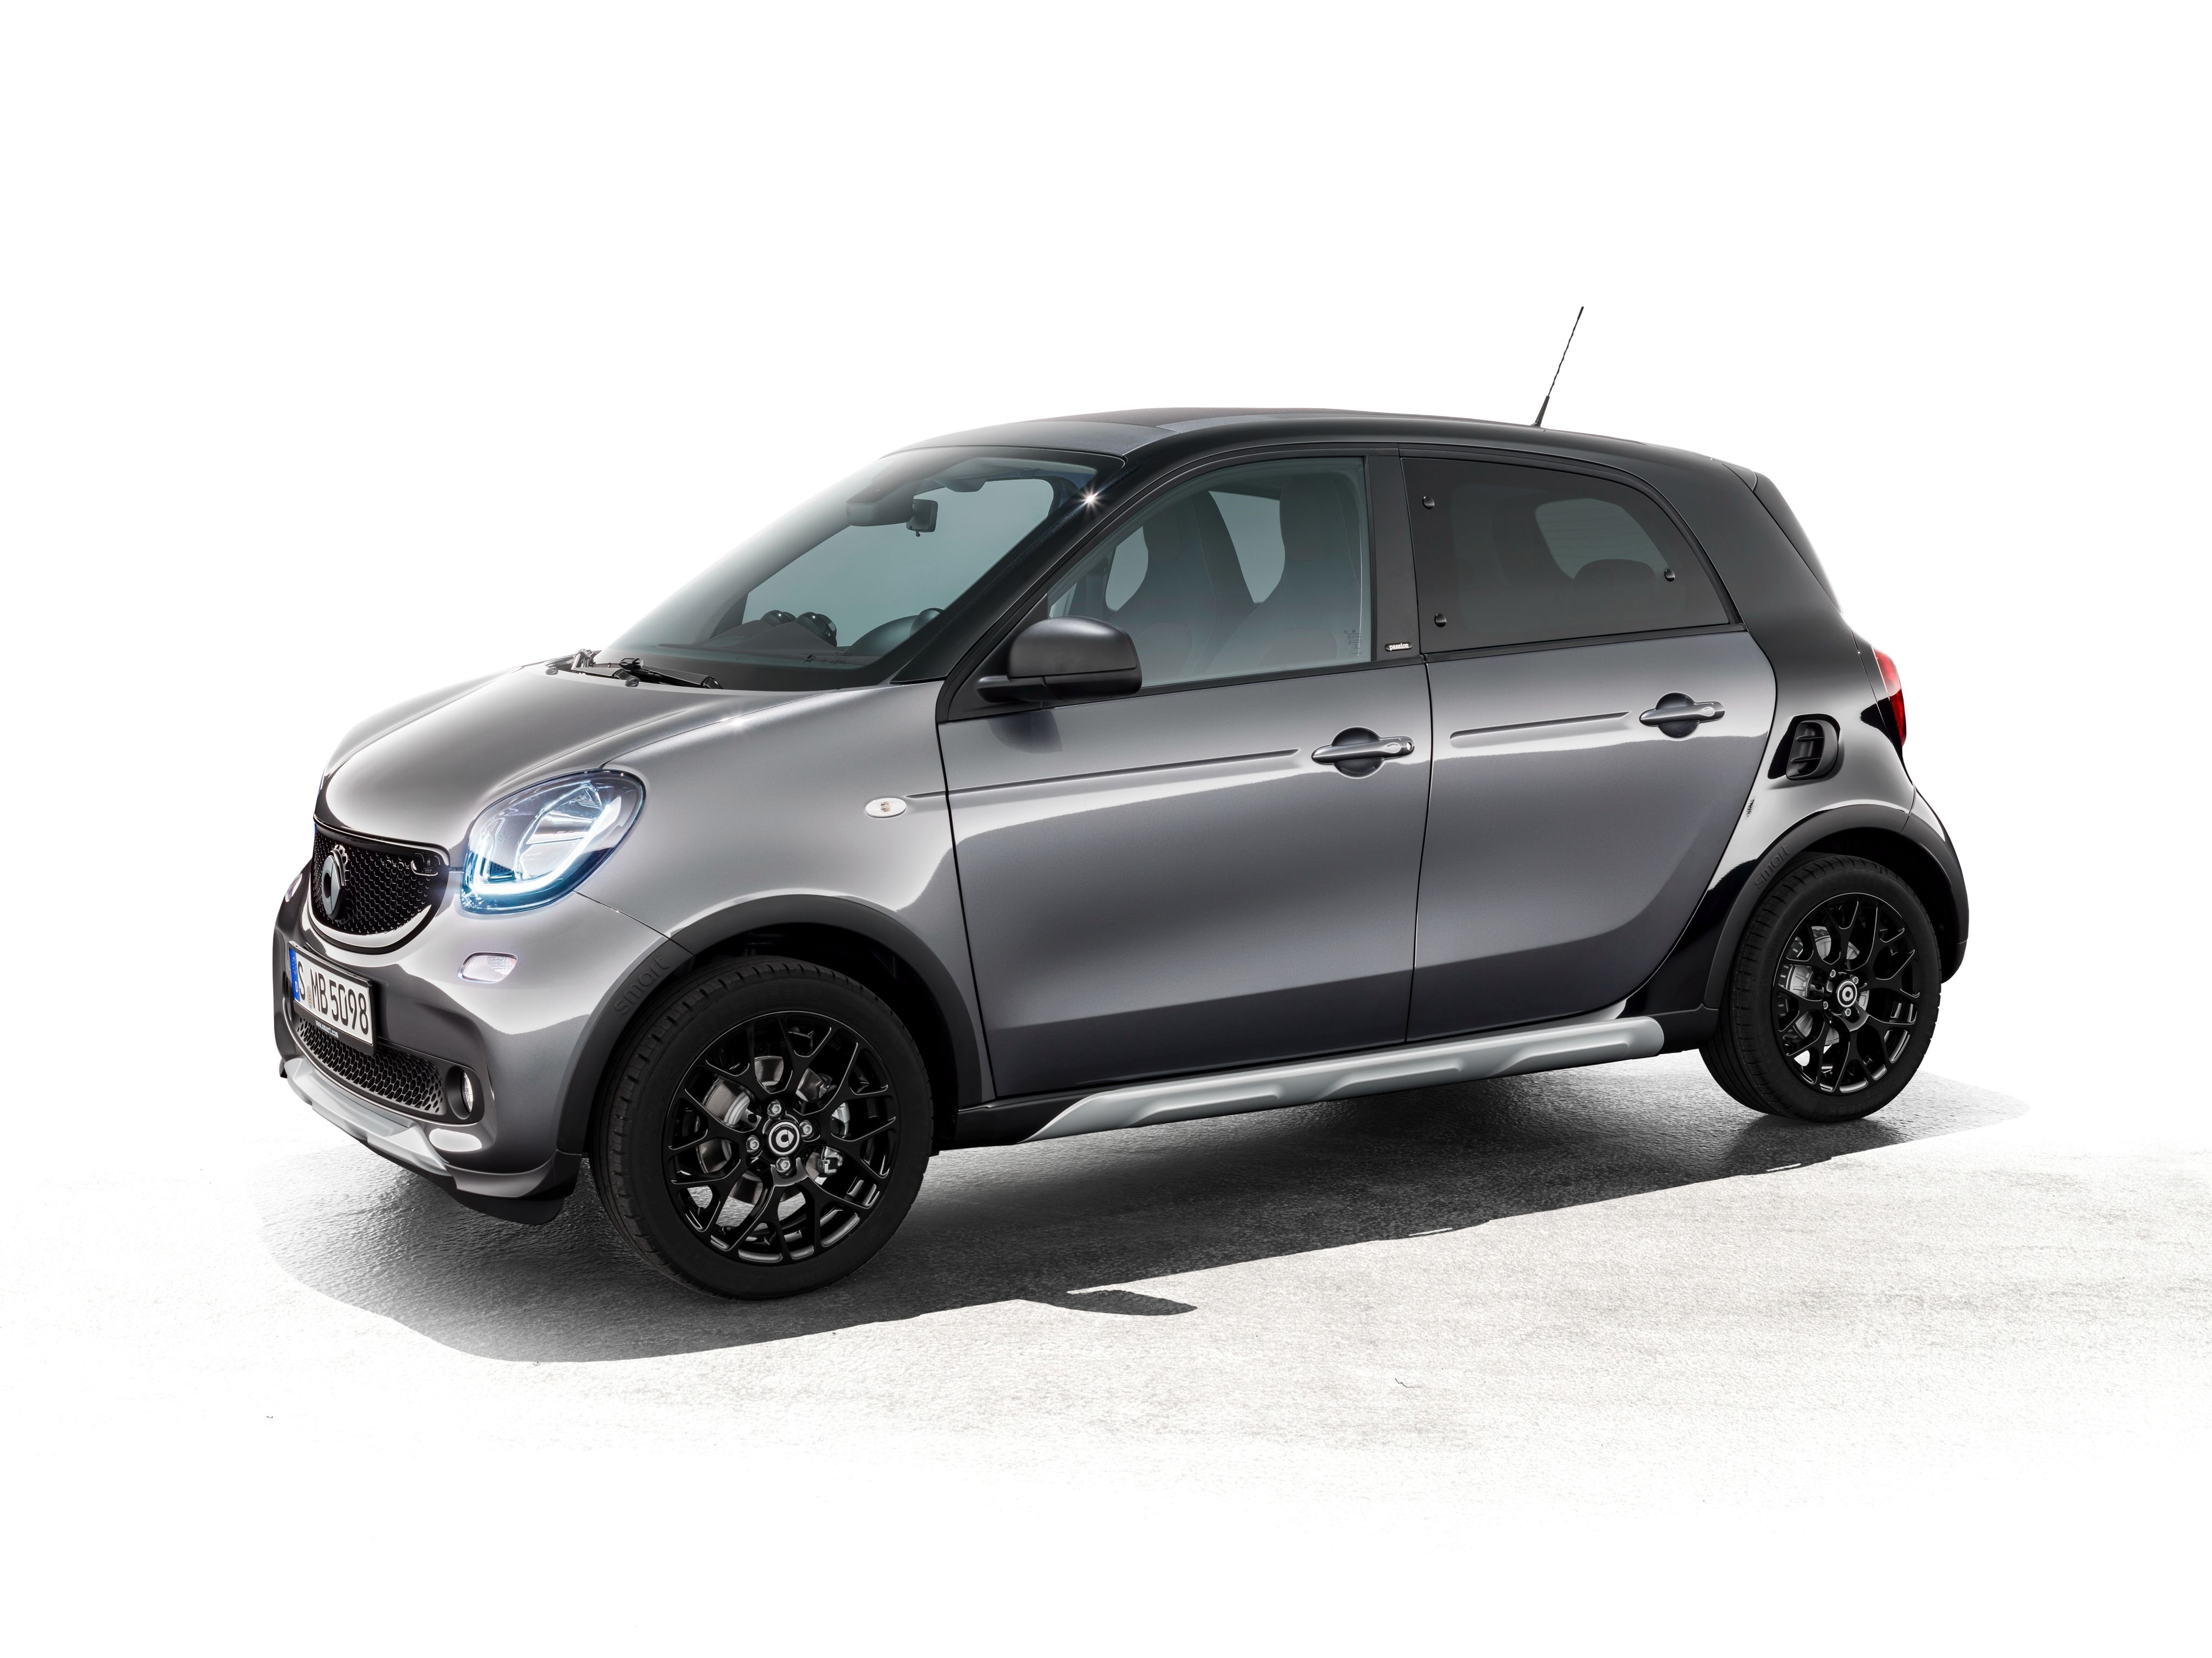 Smart forfour crosstown edition bows in shanghai with special look